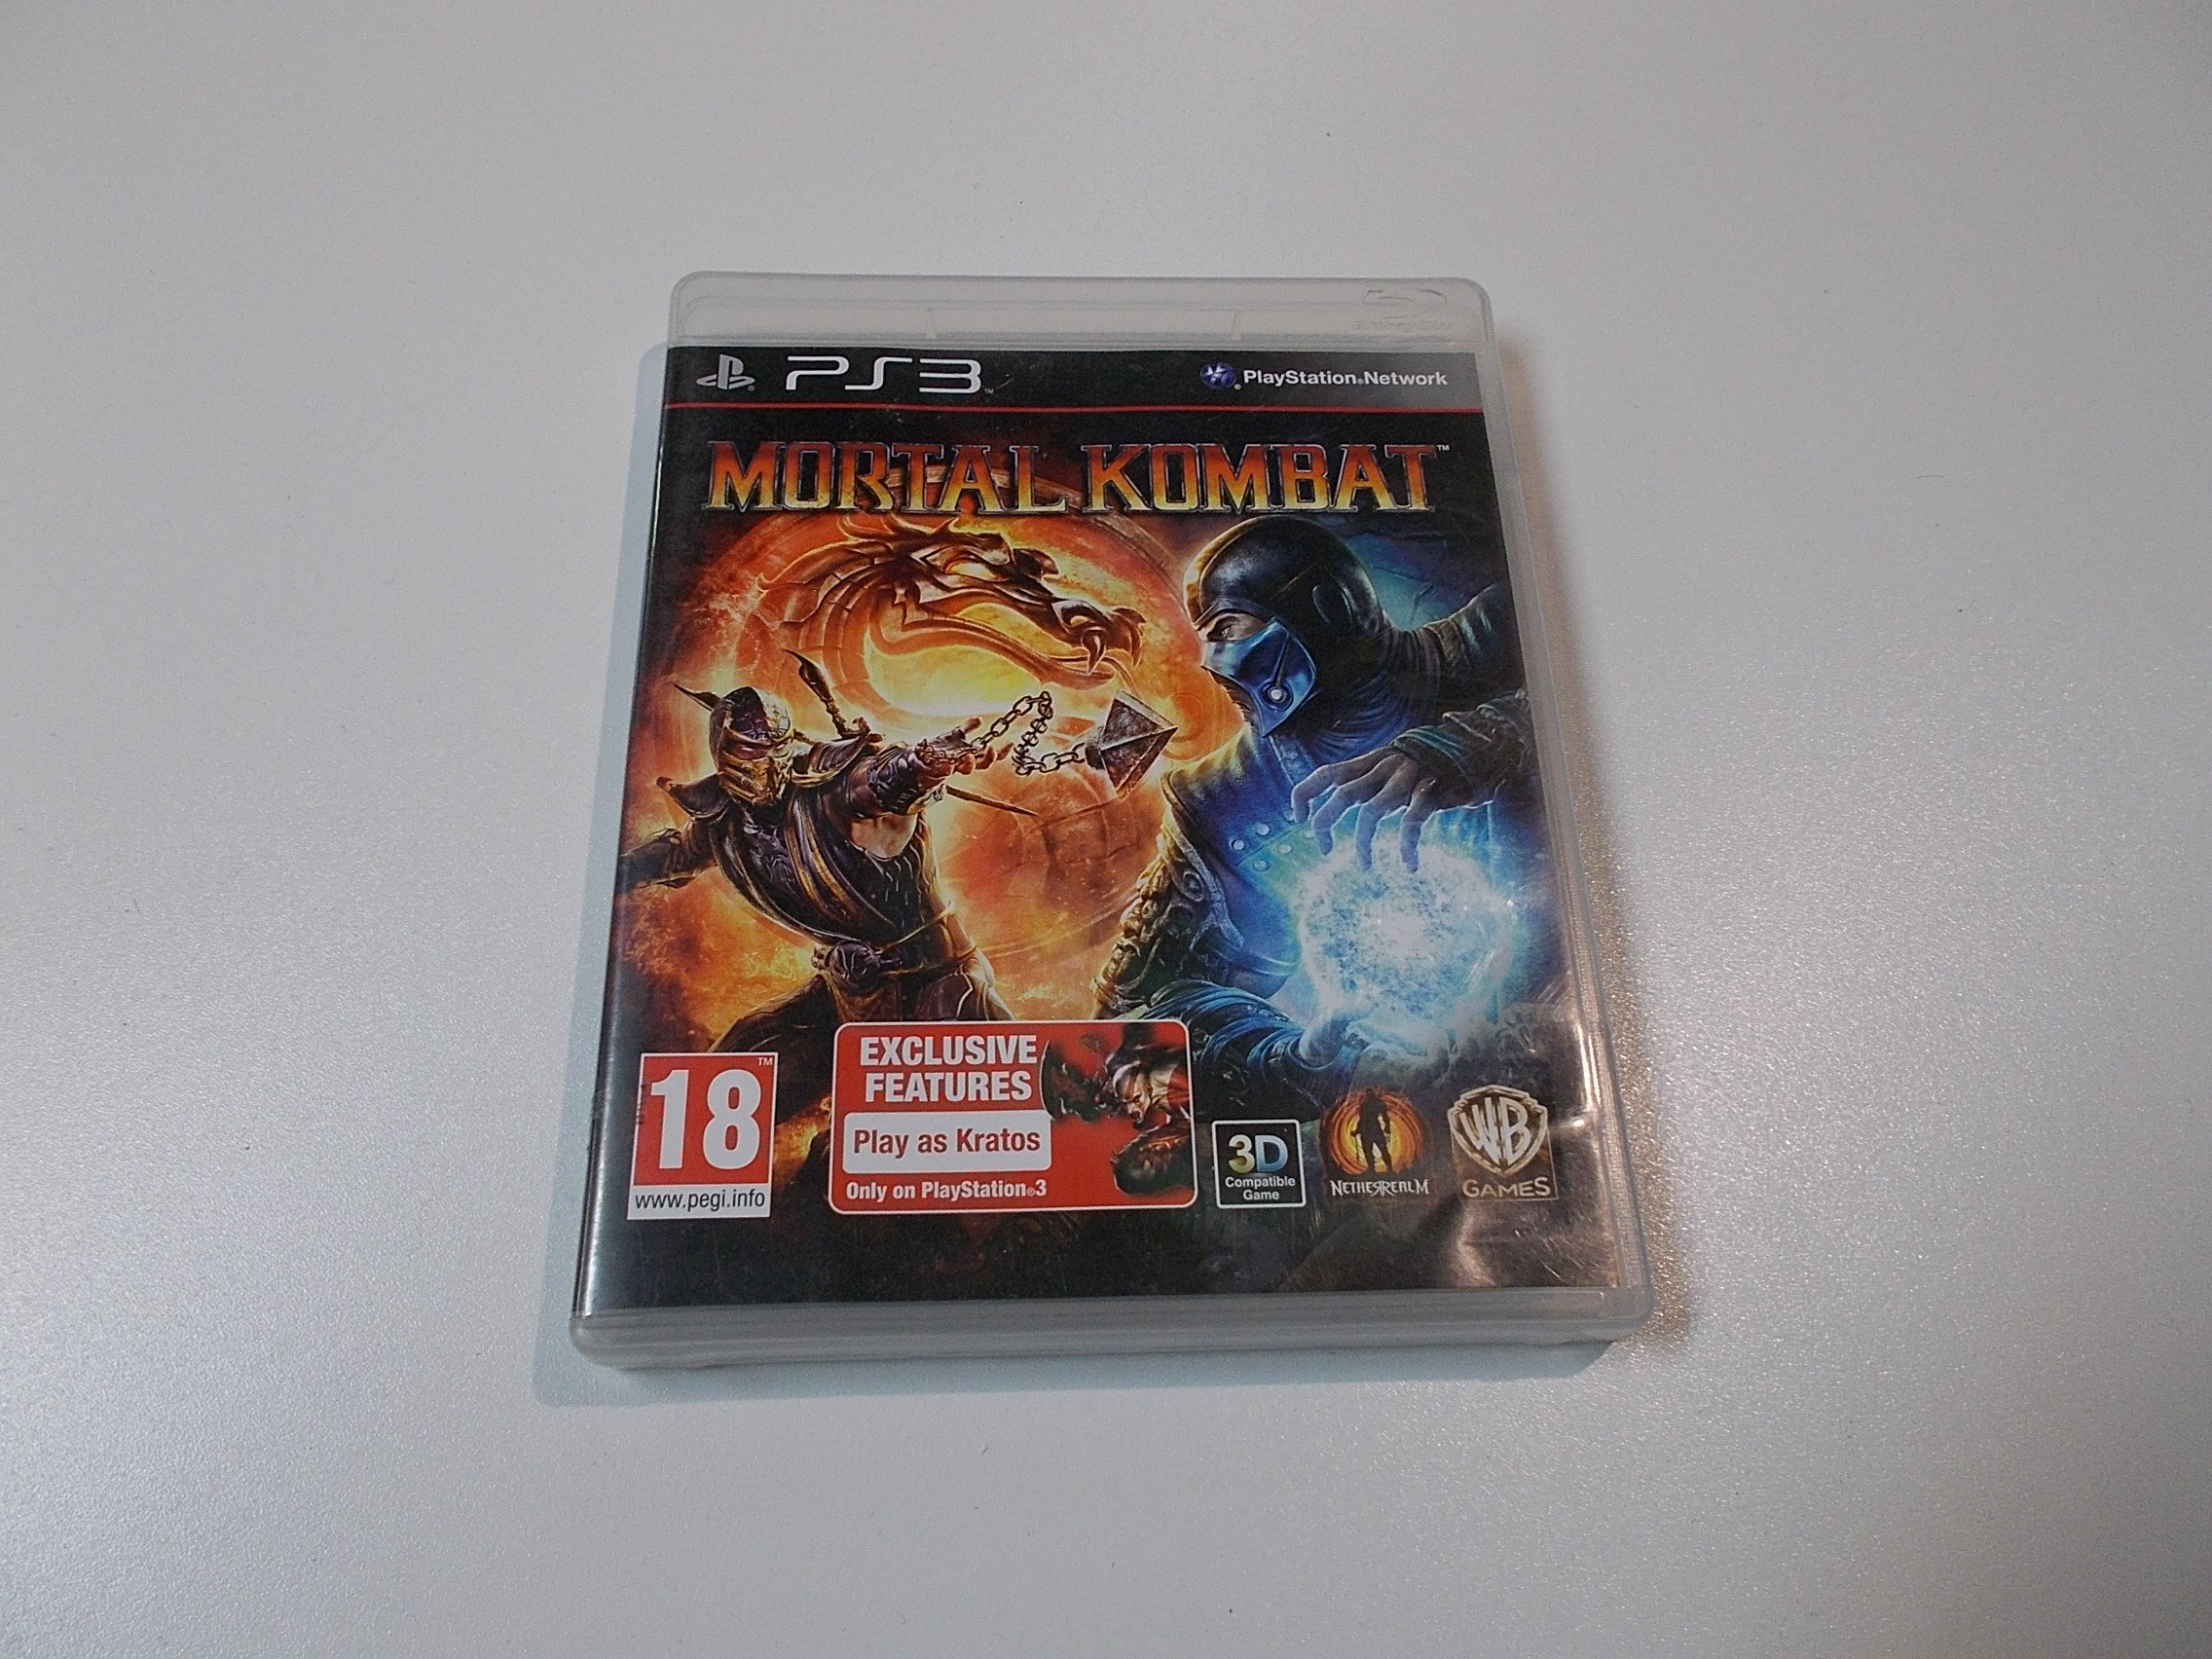 Mortal Kombat - GRA Ps3 - 0386